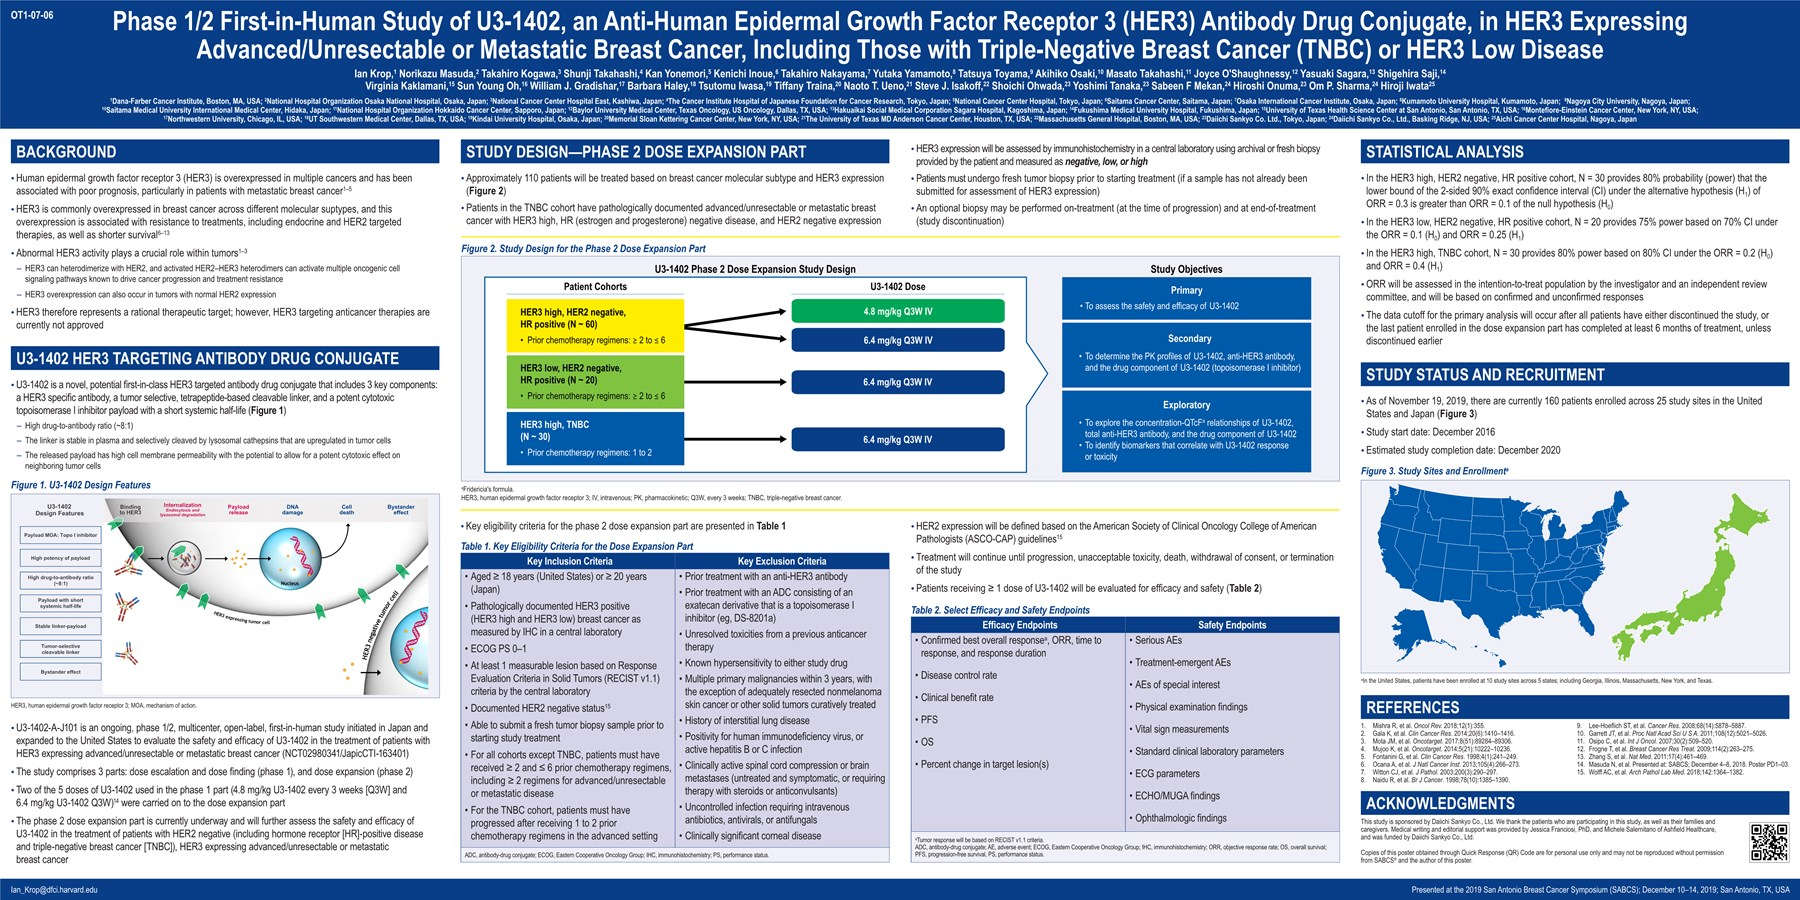 Phase 1/2 first-in-human study of U3-1402, an anti-human epidermal growth factor receptor 3 (HER3) antibody-drug conjugate, in HER3-expressing advanced/unresectable or metastatic breast cancer, including those with triple negative breast cancer (TNBC) or HER3-low disease